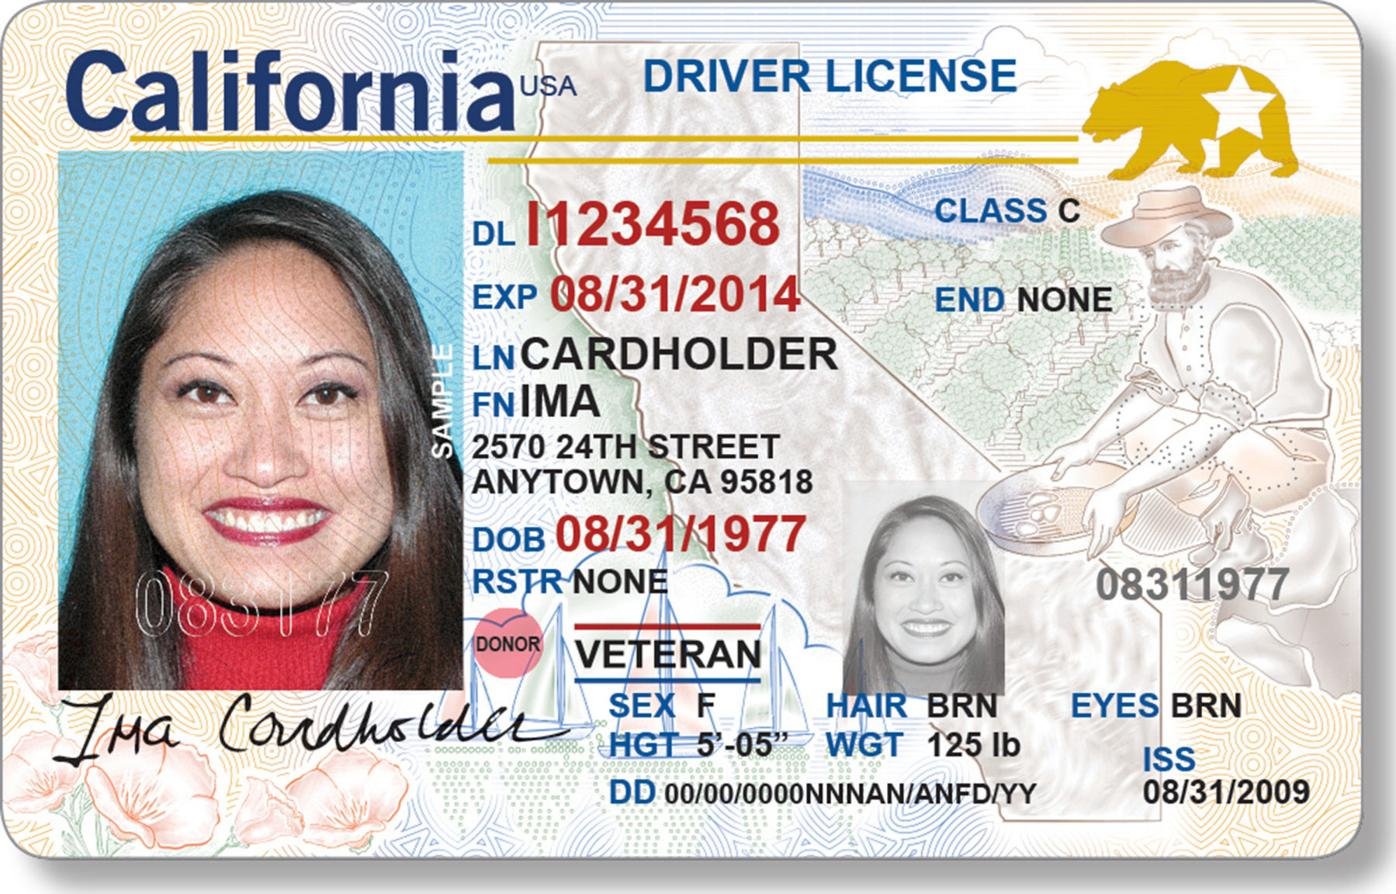 TRAVEL-CNS-ONTHESPOT-LA -- Before you drive off, here are a few tips (copy)